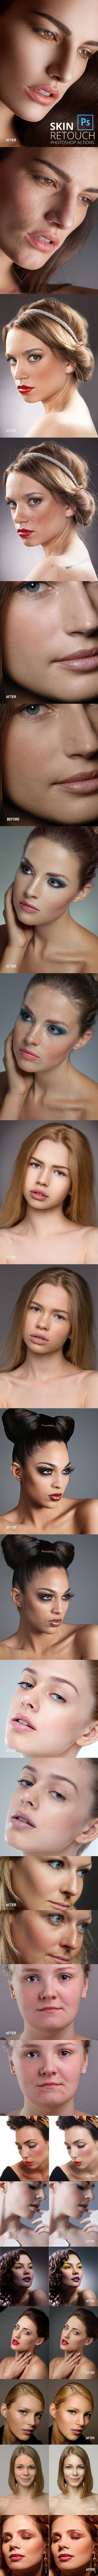 Fast skin retouching photo effects actions retouchingtutorial fast skin retouching photo effects actions retouchingtutorial retouching tutorial pinterest baditri Image collections